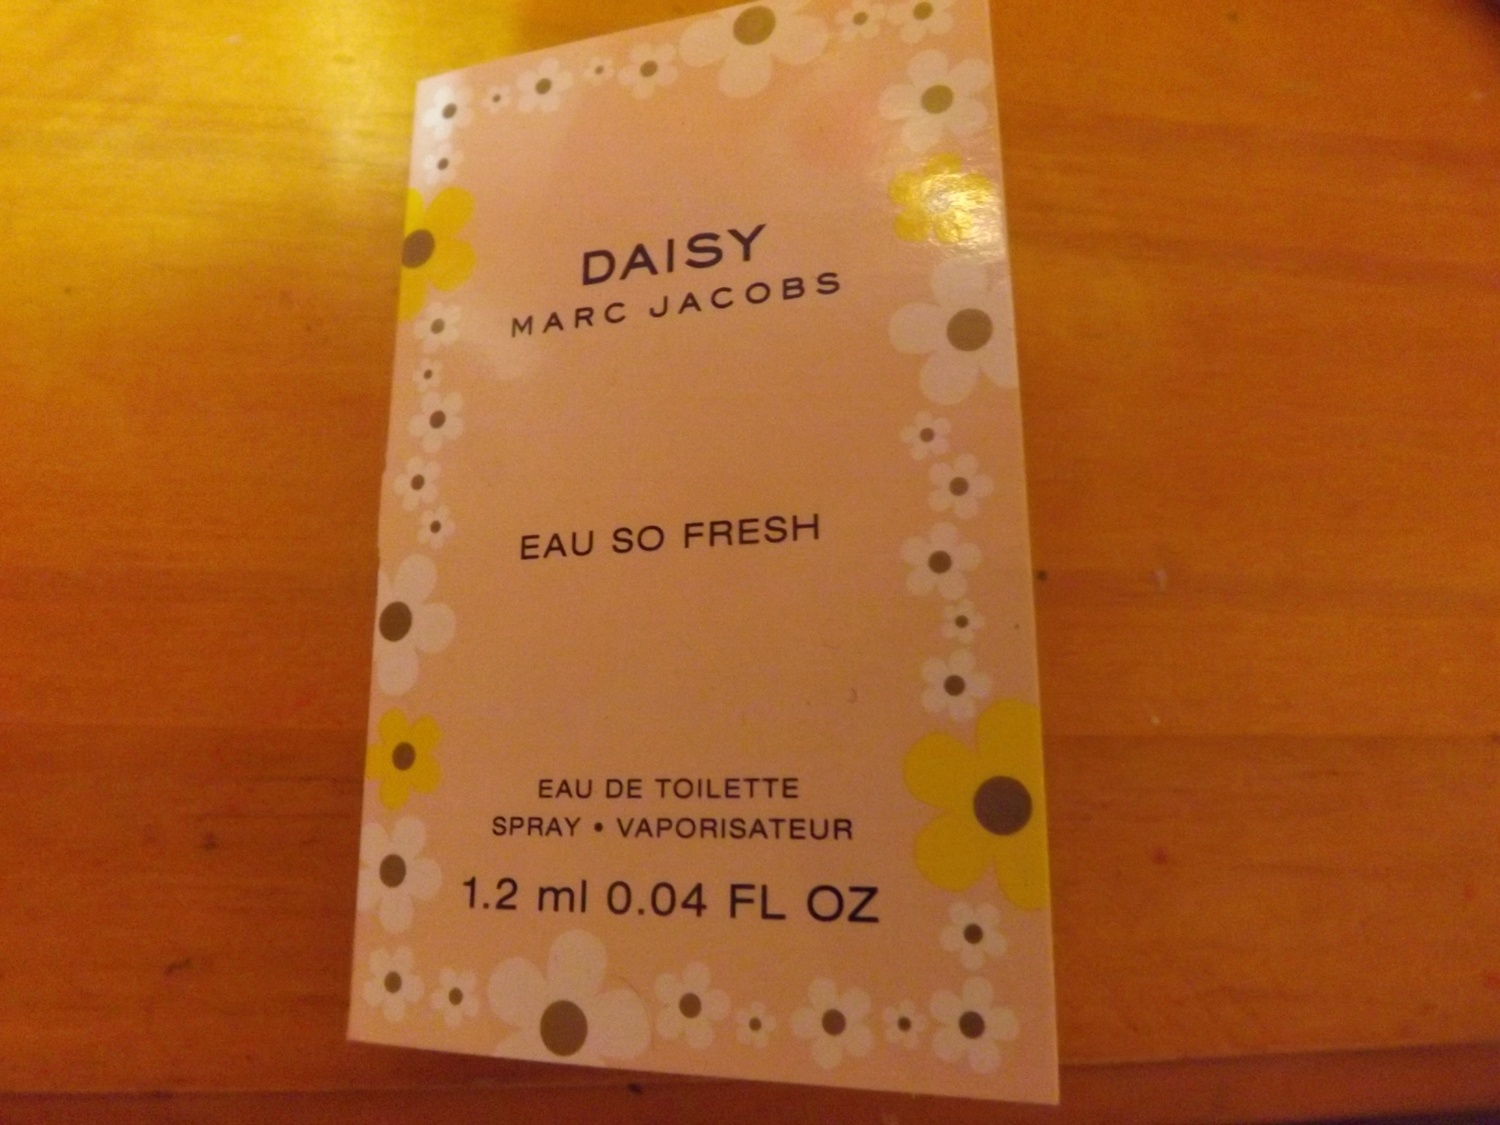 Daisy Eau So Fresh - Marc Jacobs